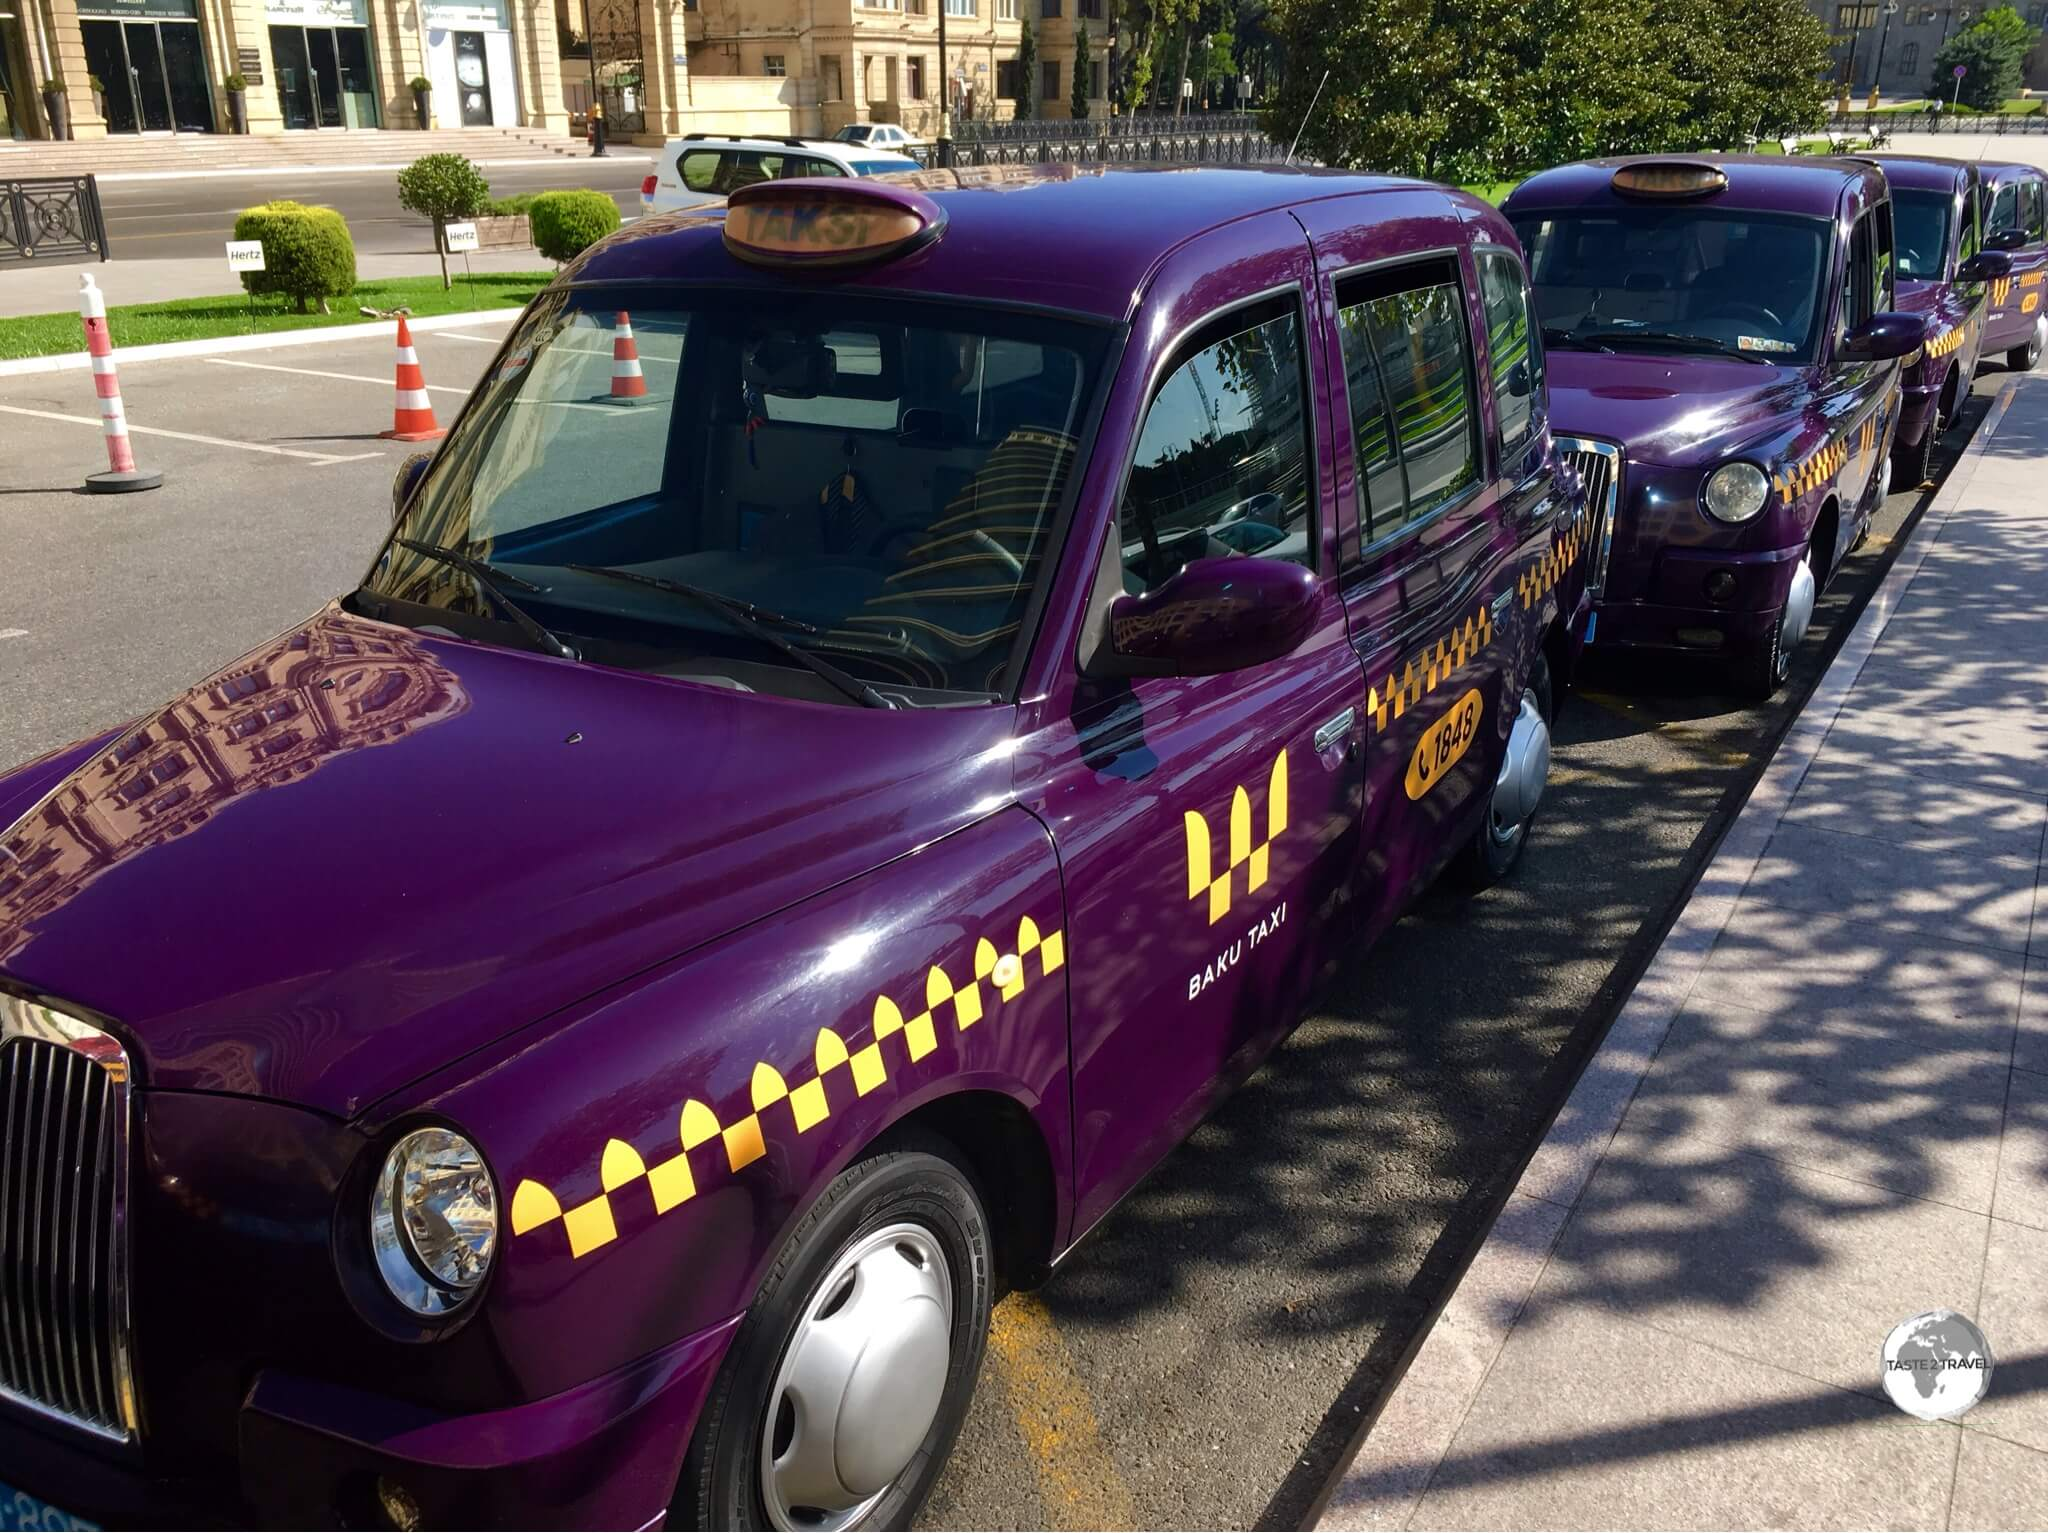 Eggplant-coloured London cabs can be hailed anywhere on the streets of Baku.